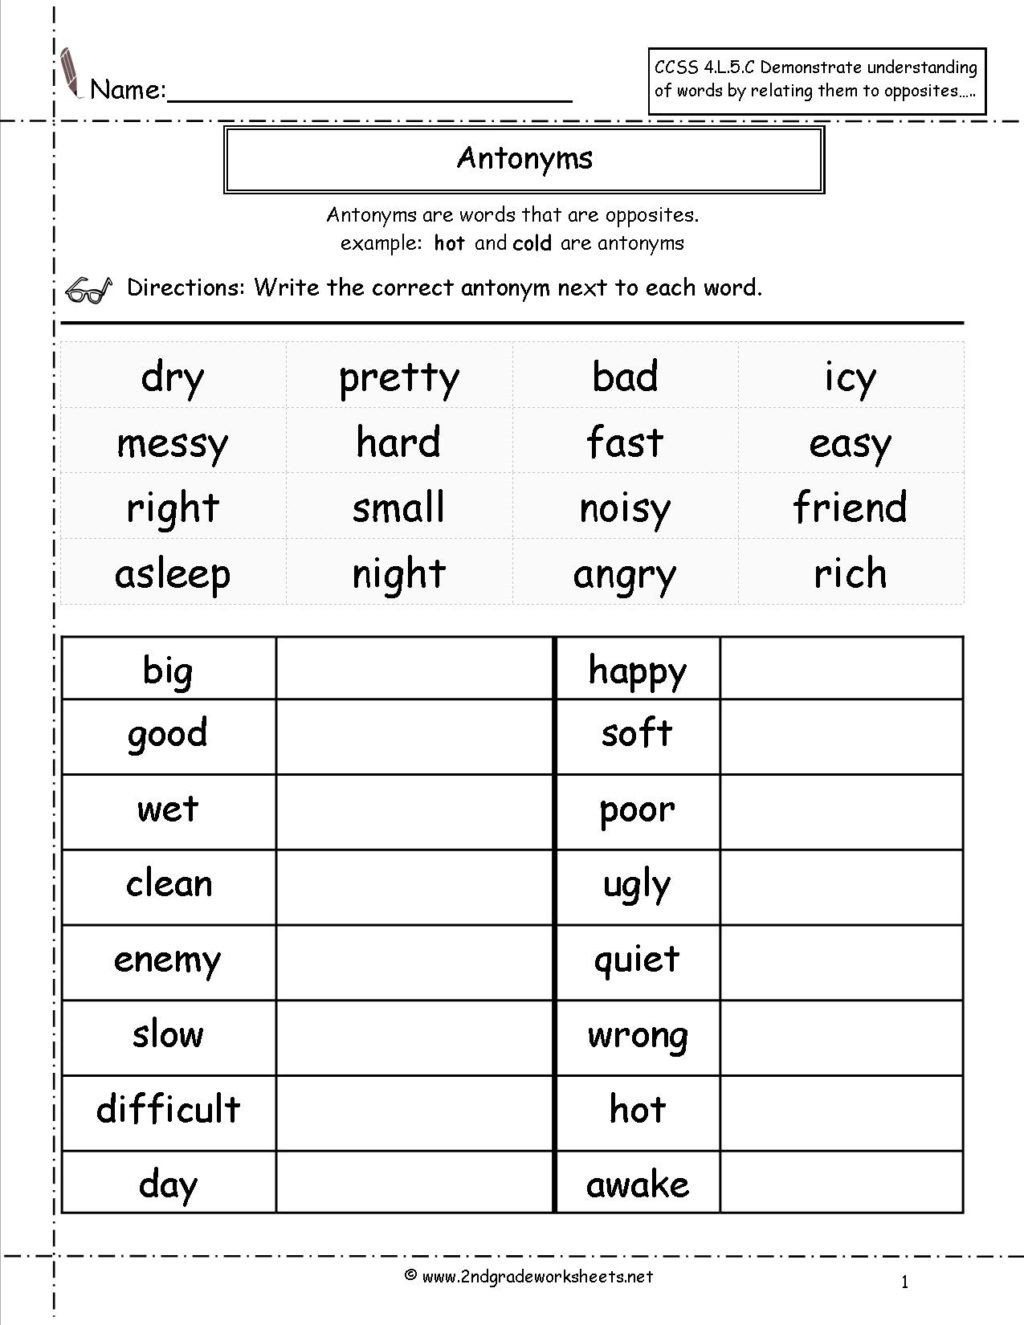 Antonyms Worksheets 3rd Grade Math Worksheet Antonyms Math Worksheet Free